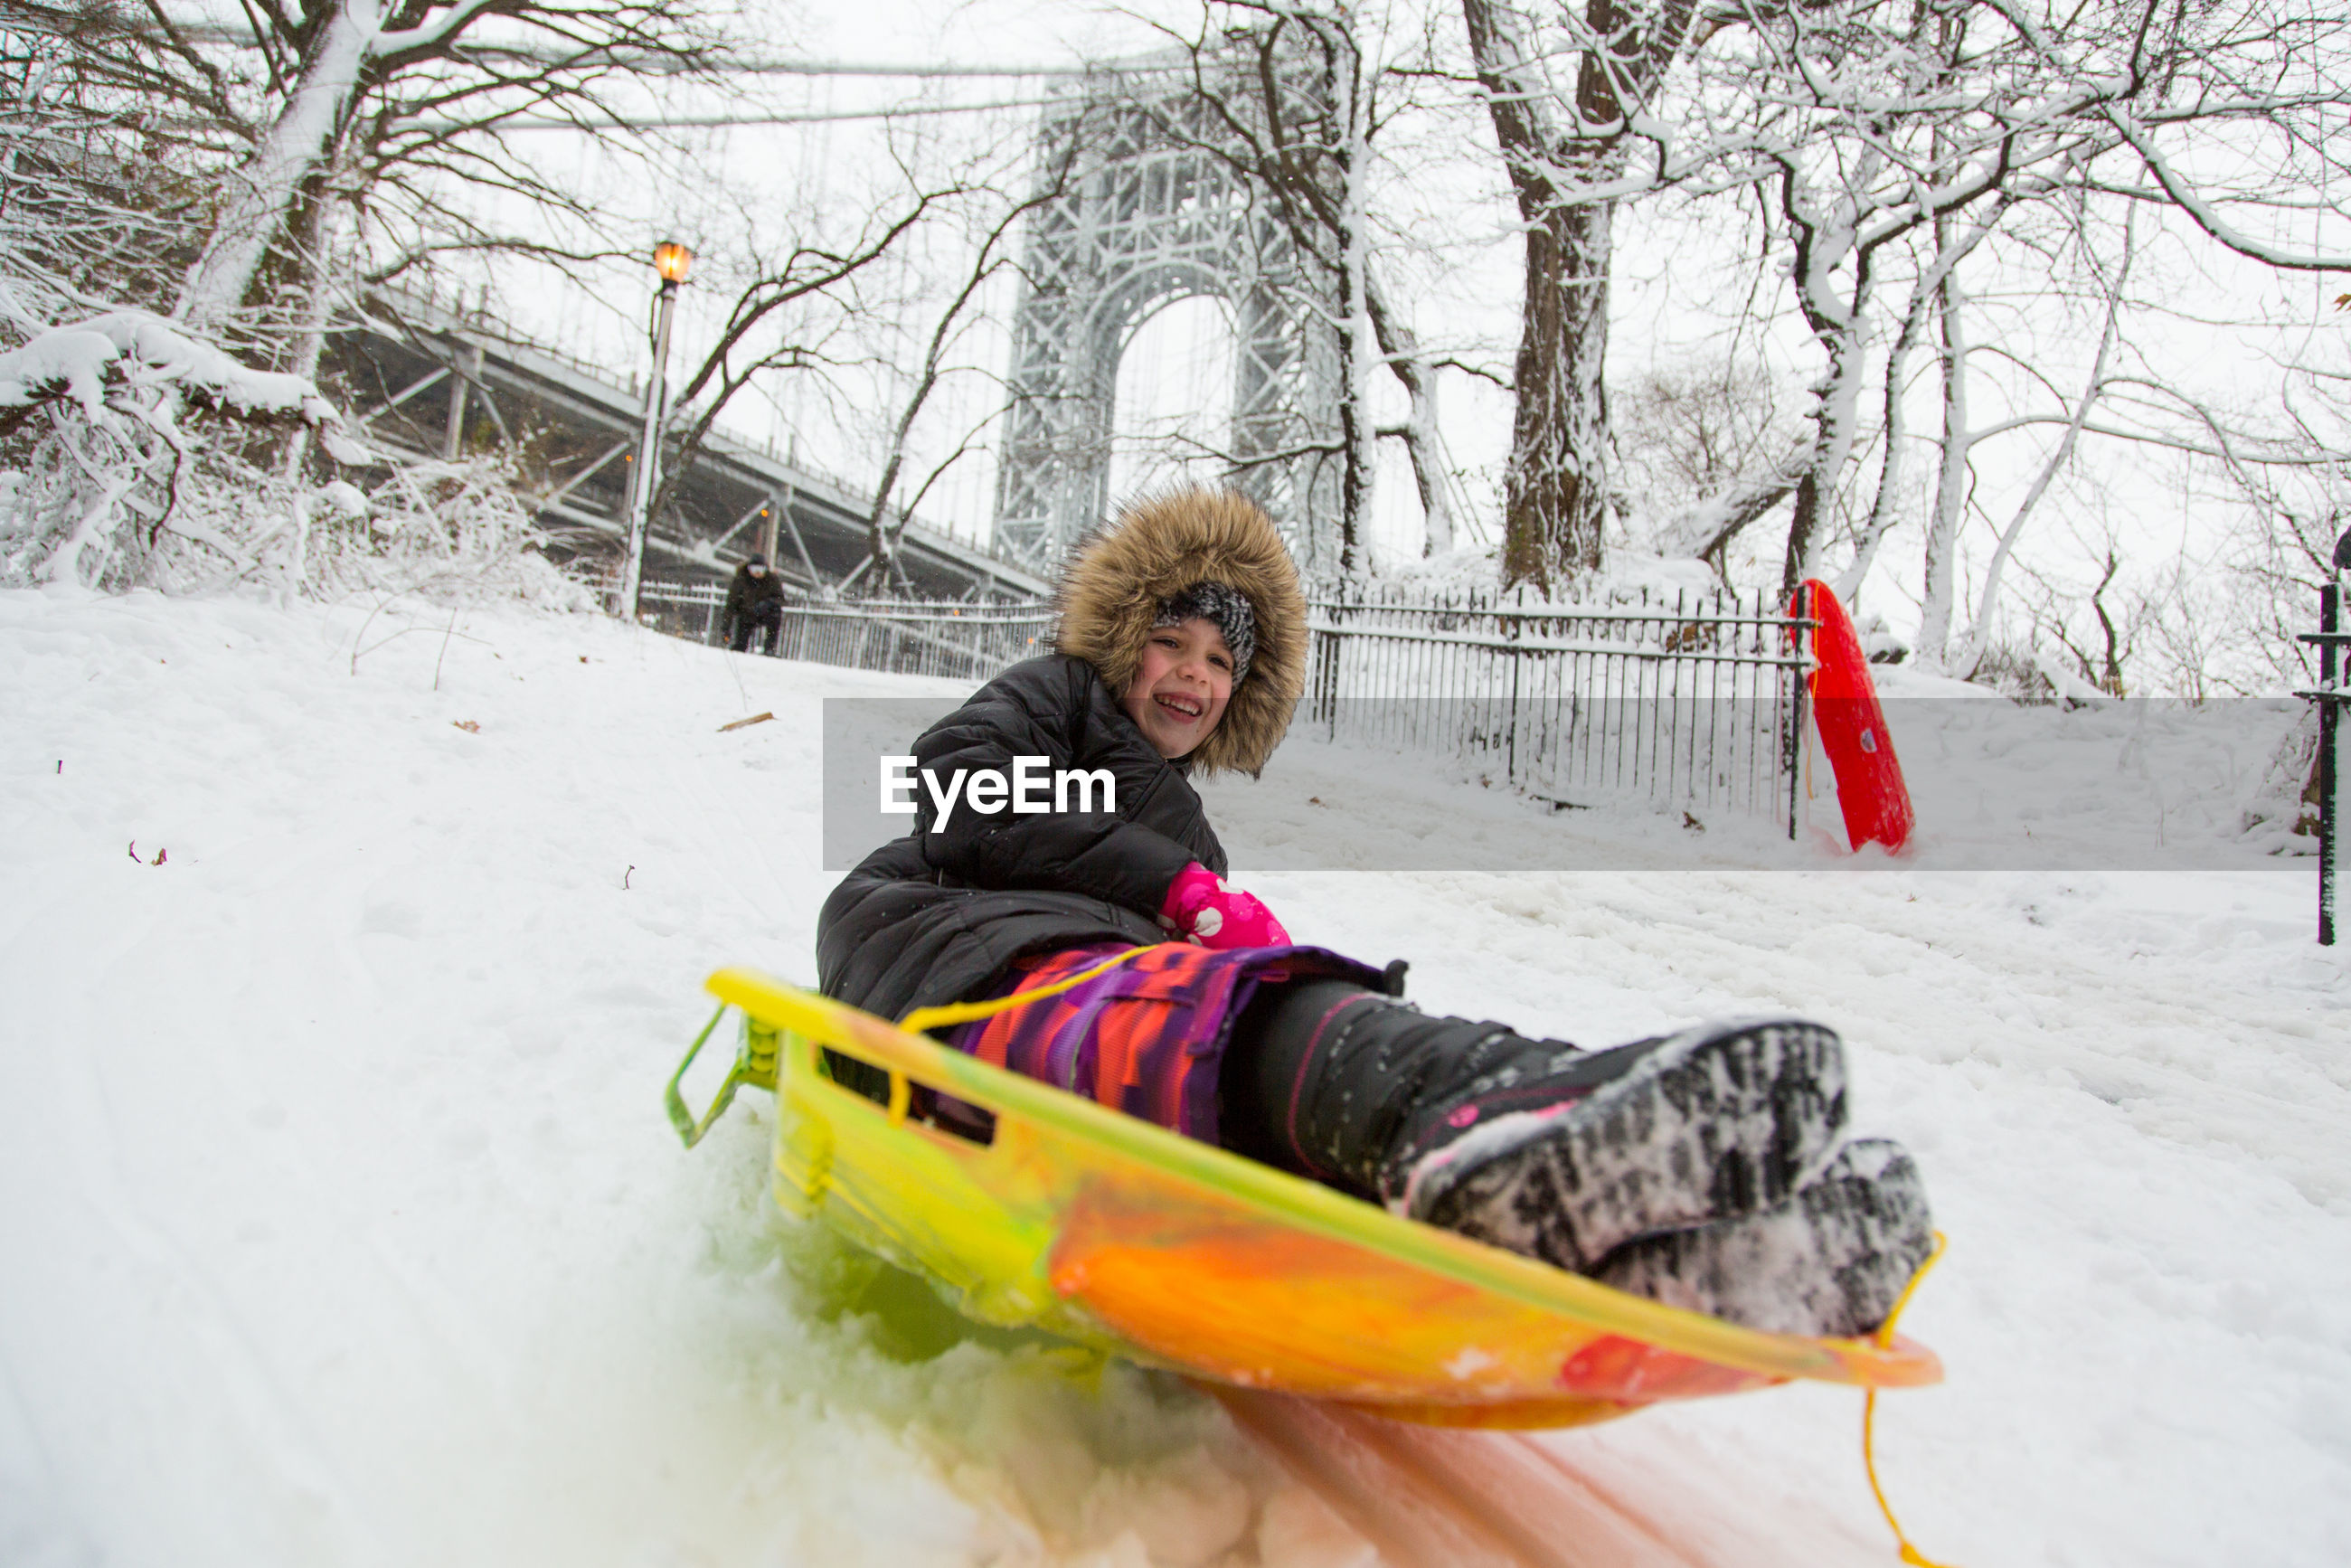 winter, snow, cold temperature, warm clothing, child, one person, knit hat, people, one woman only, bare tree, outdoors, only women, day, snowing, tobogganing, adult